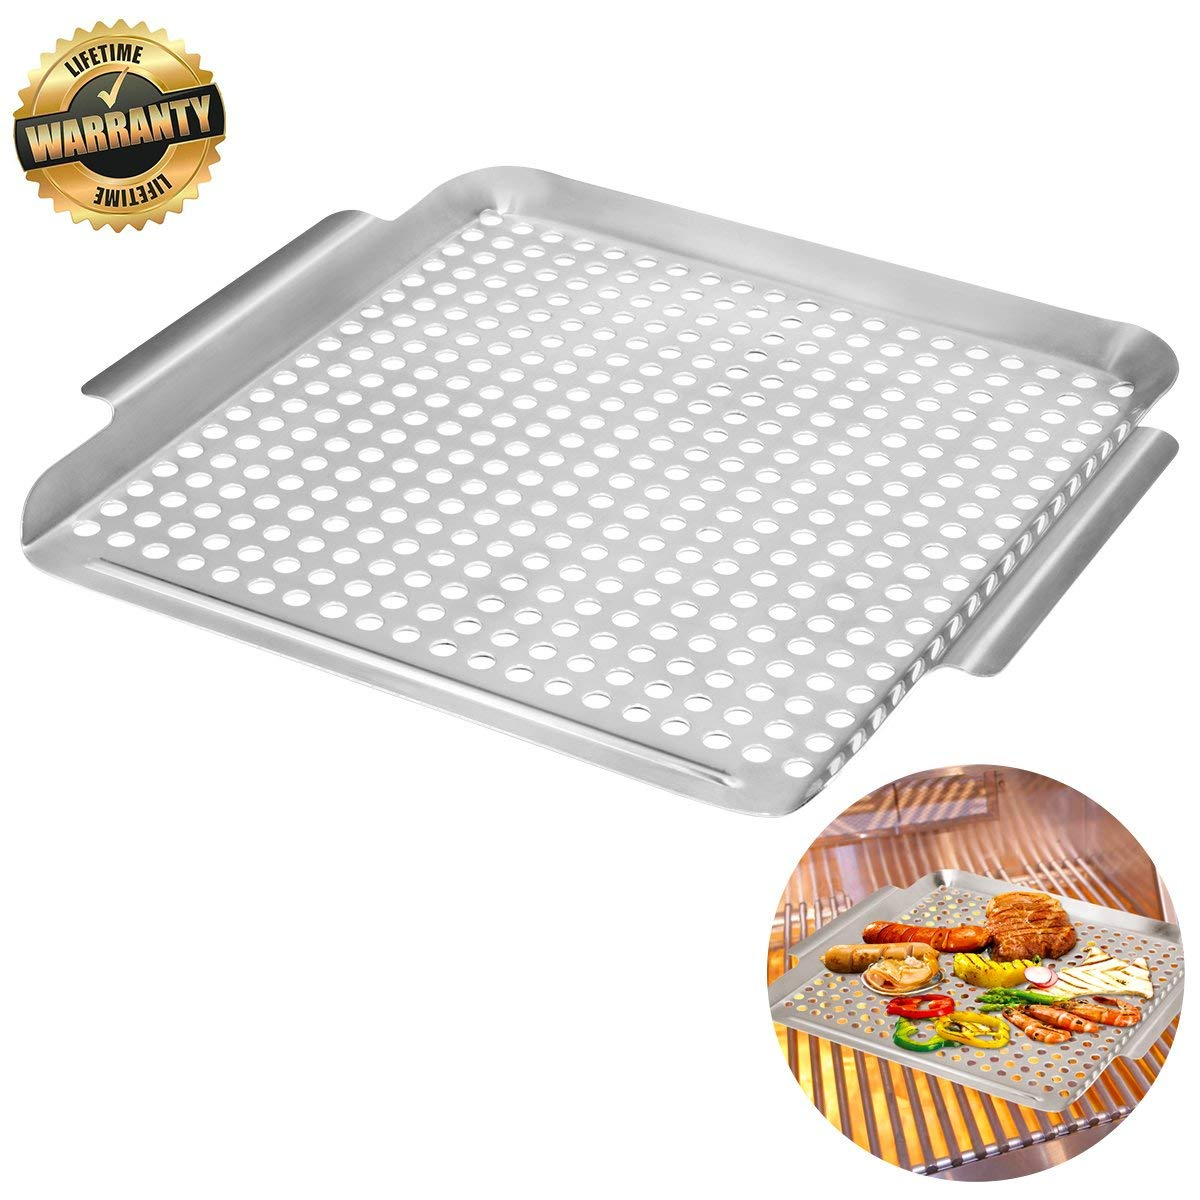 Grill Pan Stainless Steel Grill Topper Heavy Duty Bbq Grill Wok With Handles Vegetables Grill Basket Outdoor Grill Accessories Cookware Grill Utensils For Barbecue Cooking Walmart Com Walmart Com